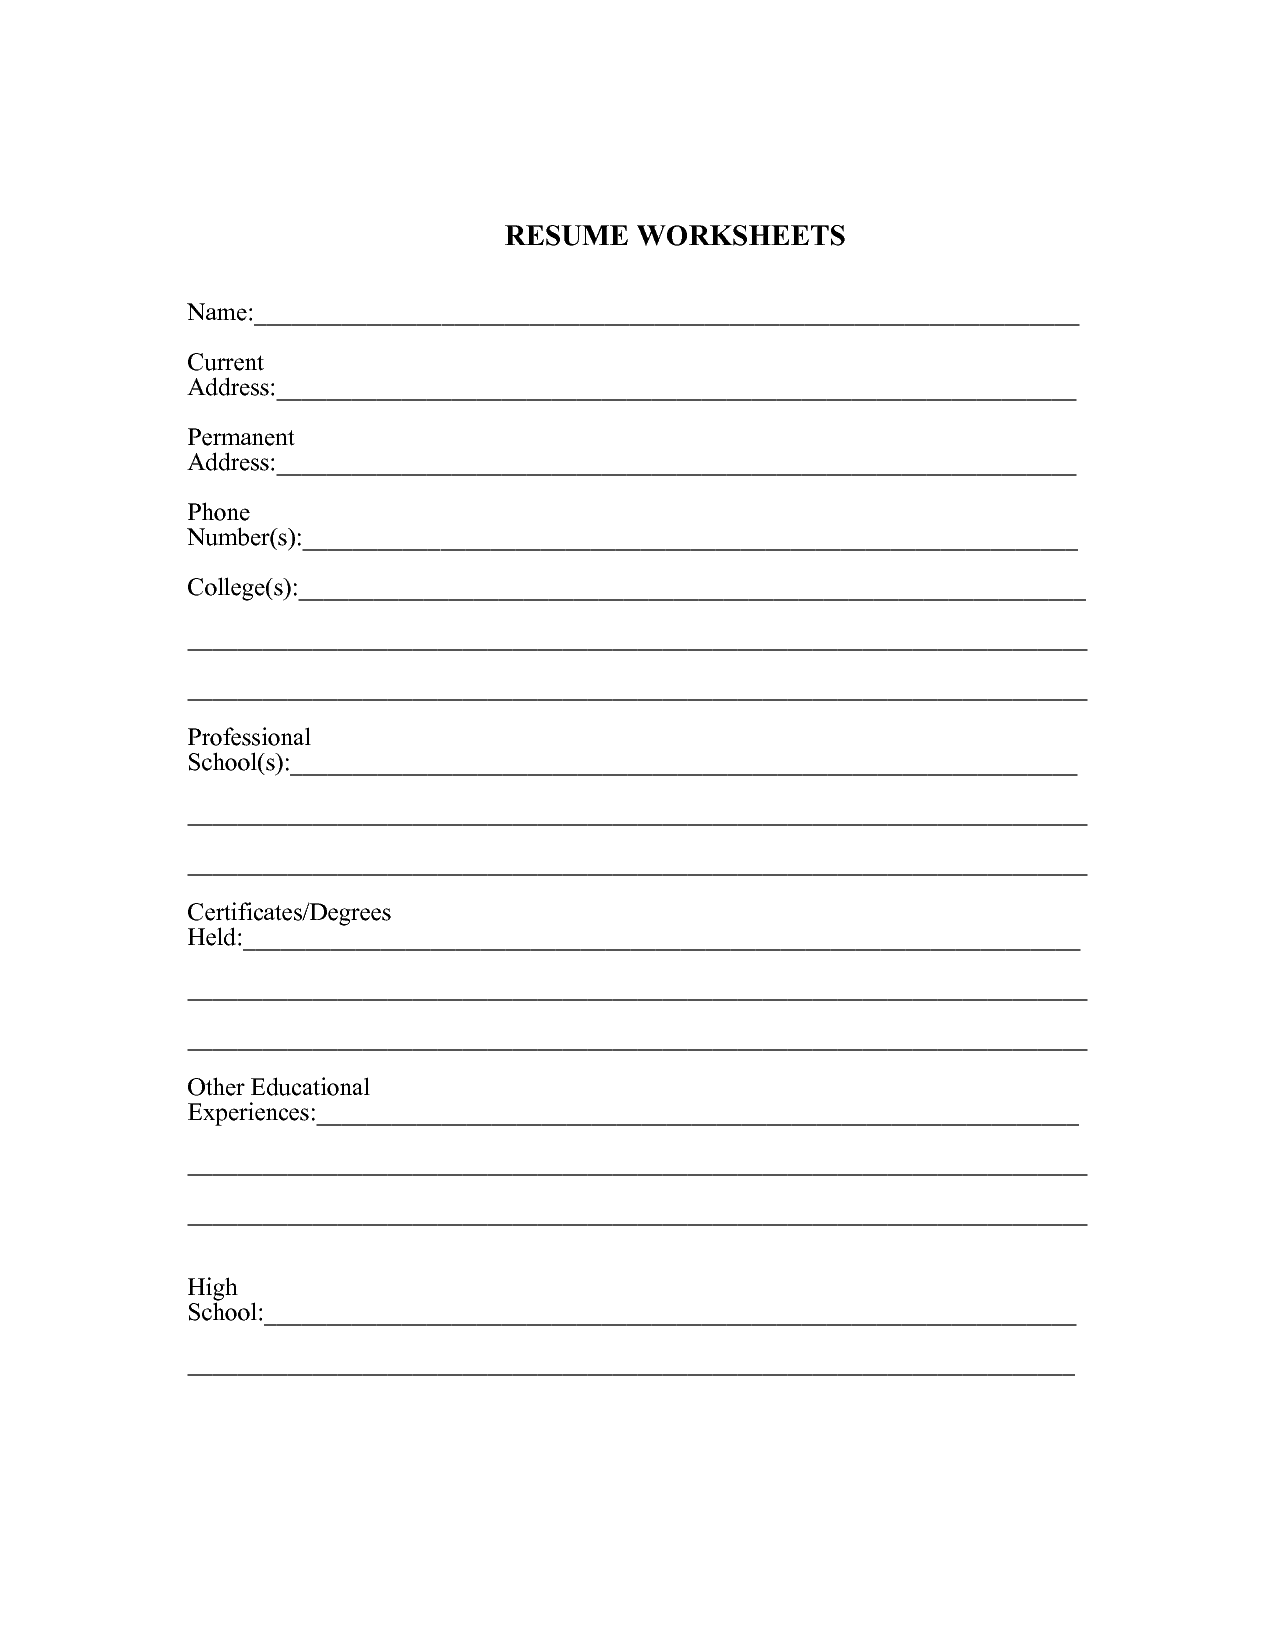 Free Worksheet Career Exploration Worksheets resume outline worksheet printable 945x1223 components free job search planning and career research